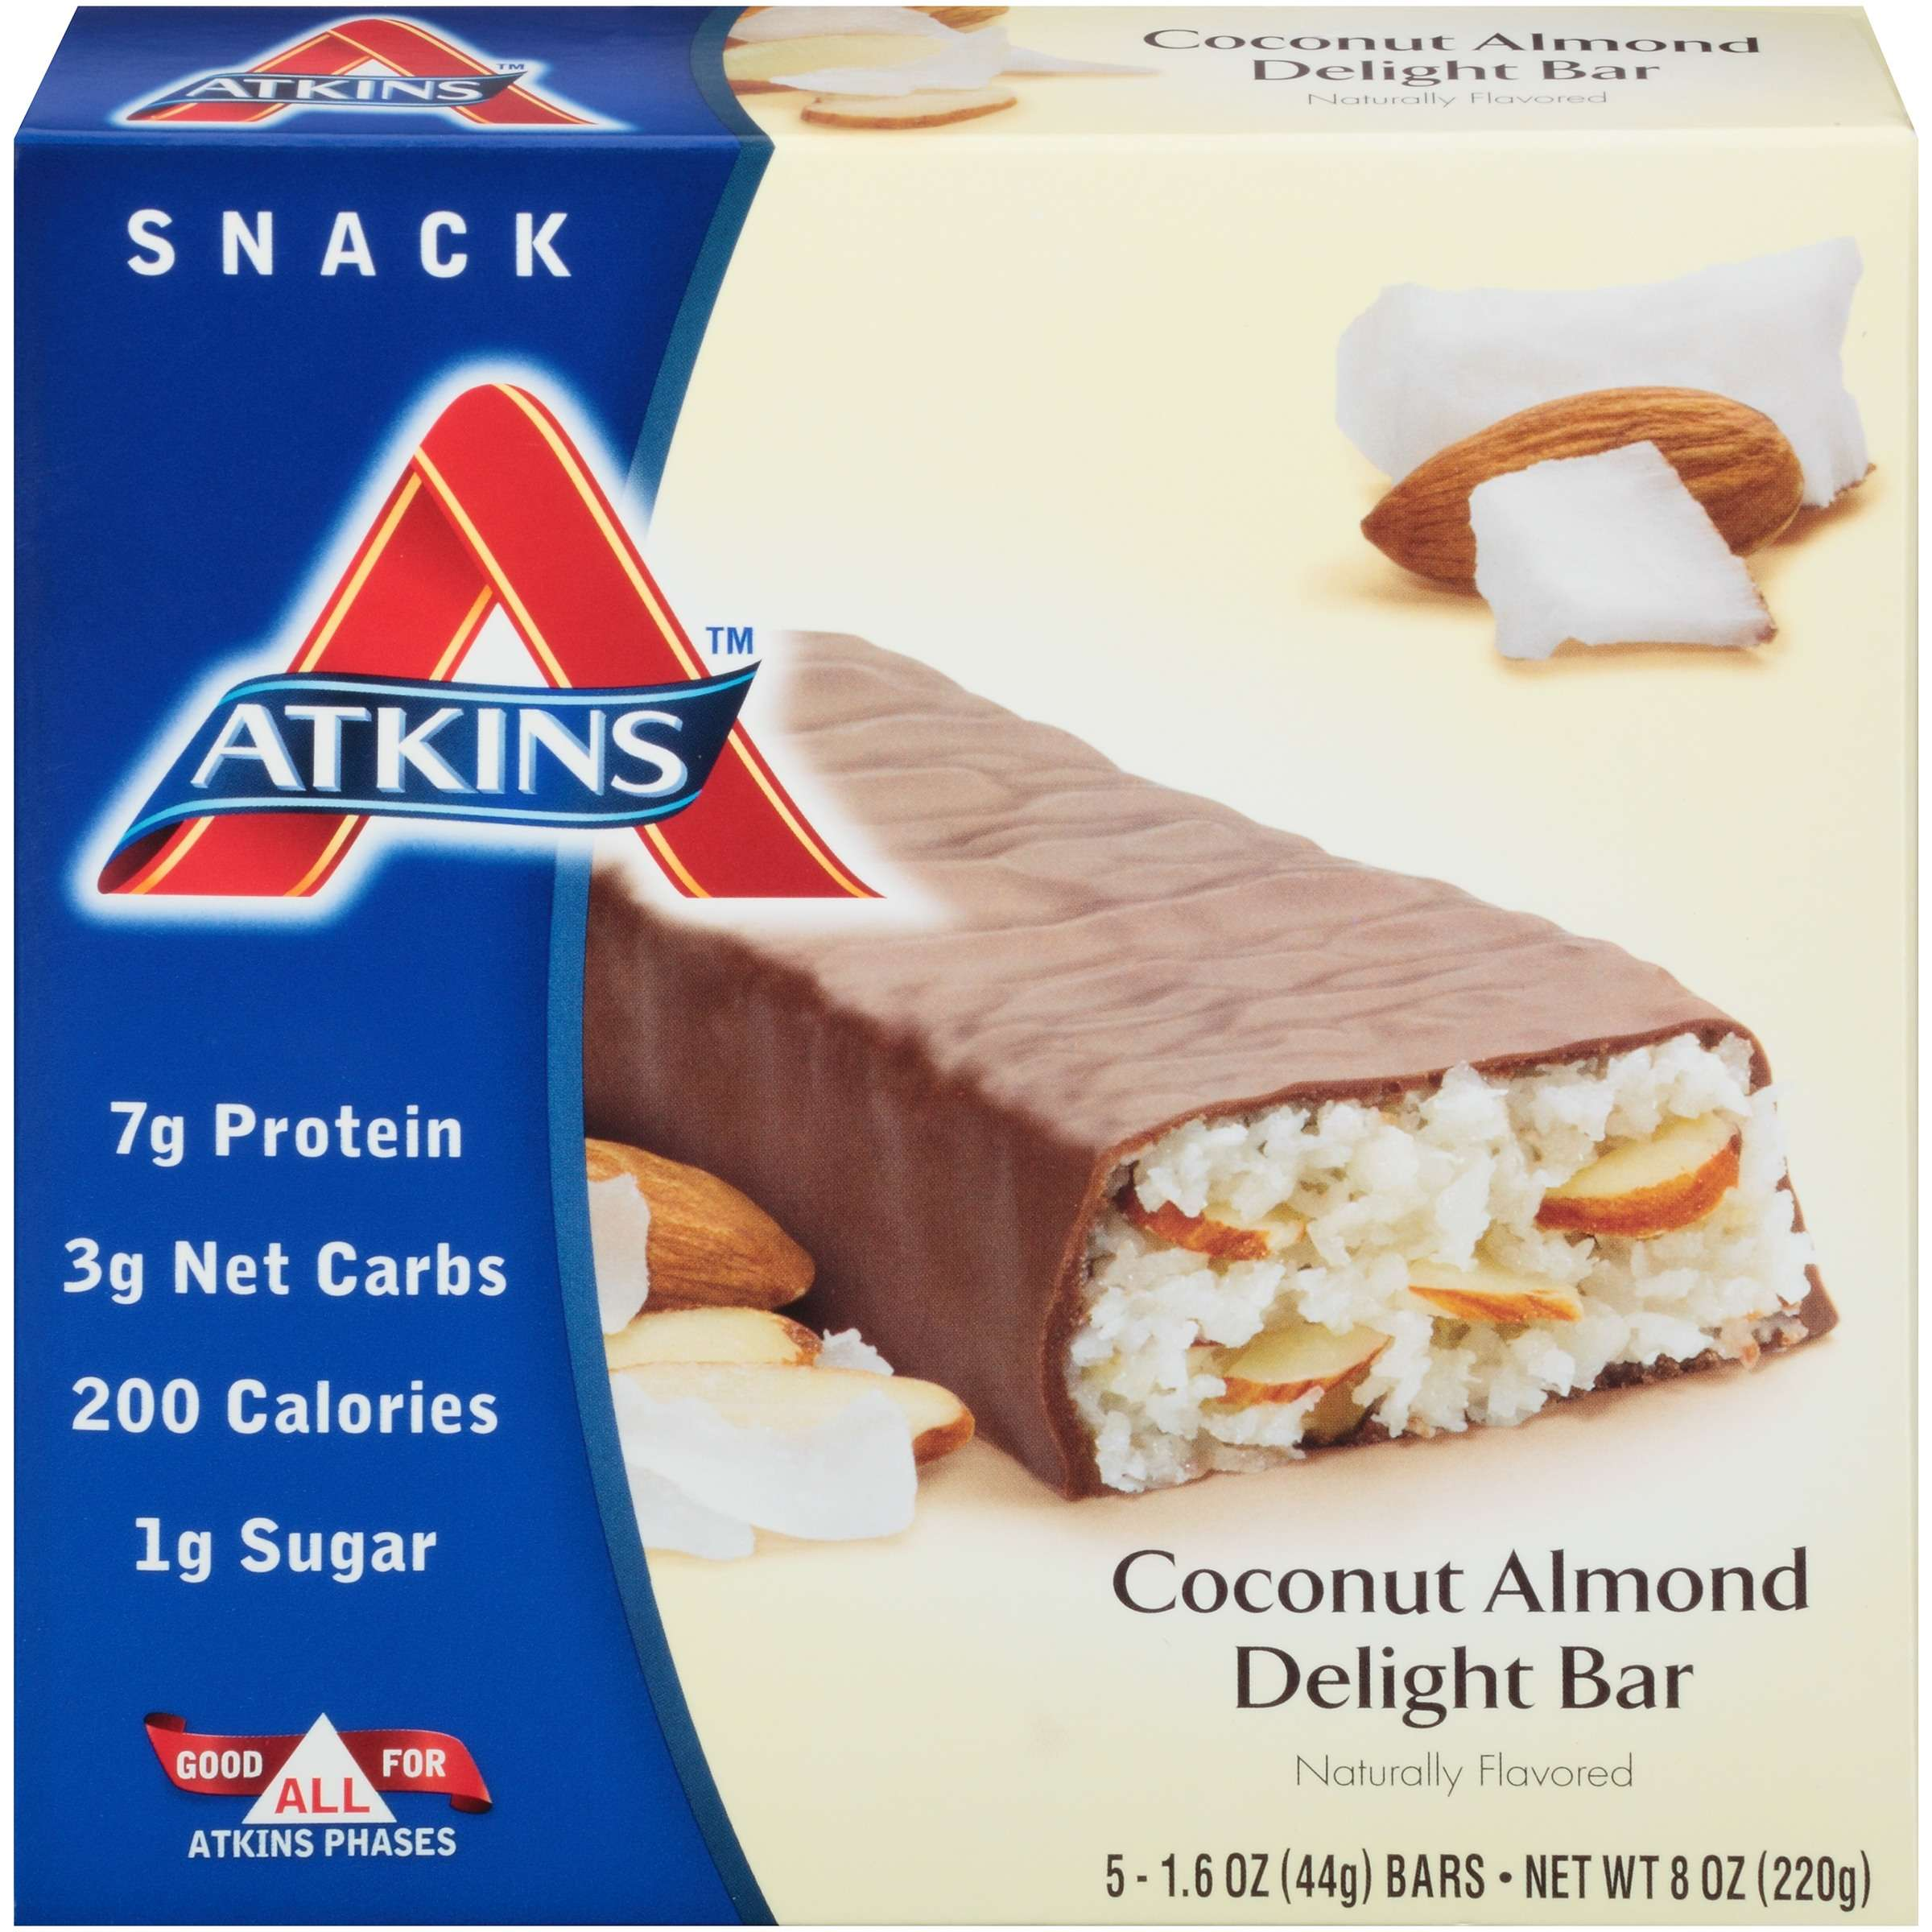 Atkins Coconut Almond Delight Bar, 1.6oz, 5-pack (Snack)